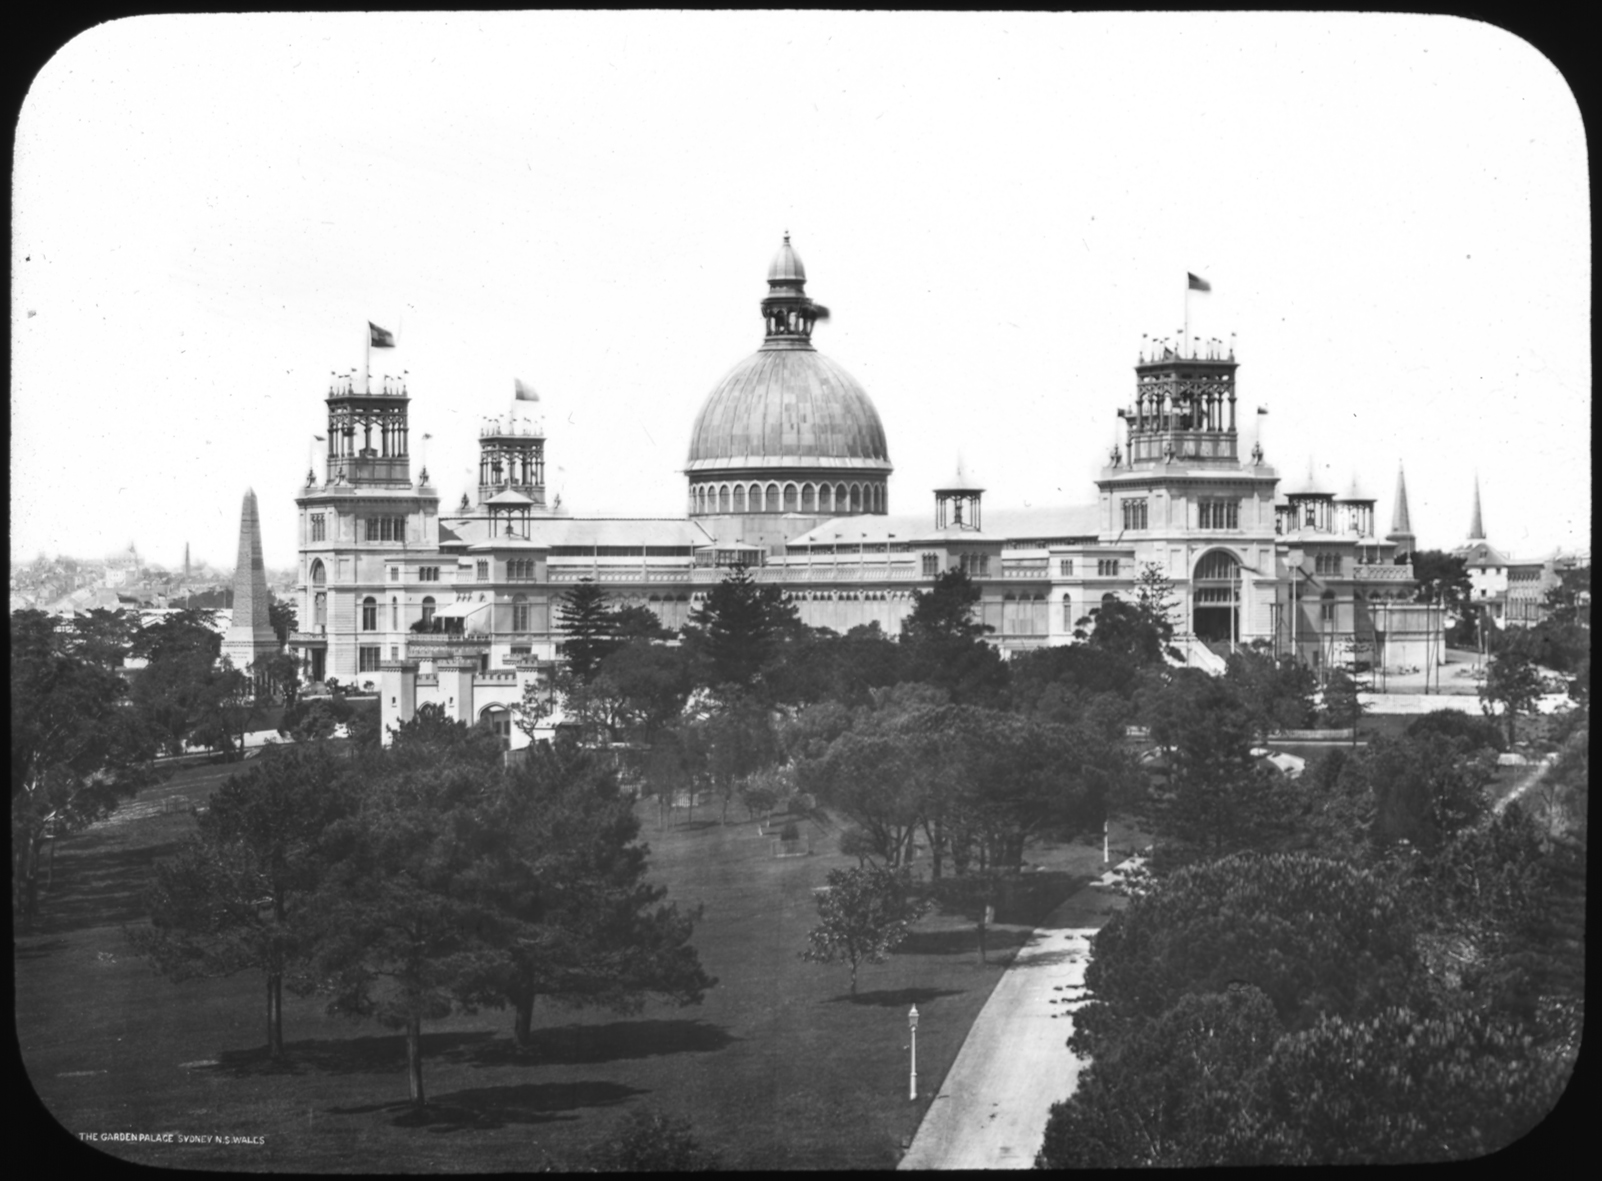 Photo courtesy of State Records NSW - Built in only eight months to house the Sydney International Exhibition which opened 17 September 1879. It burnt down on September 22 1882. [NRS 4481 No. 2920, Reel 2718]